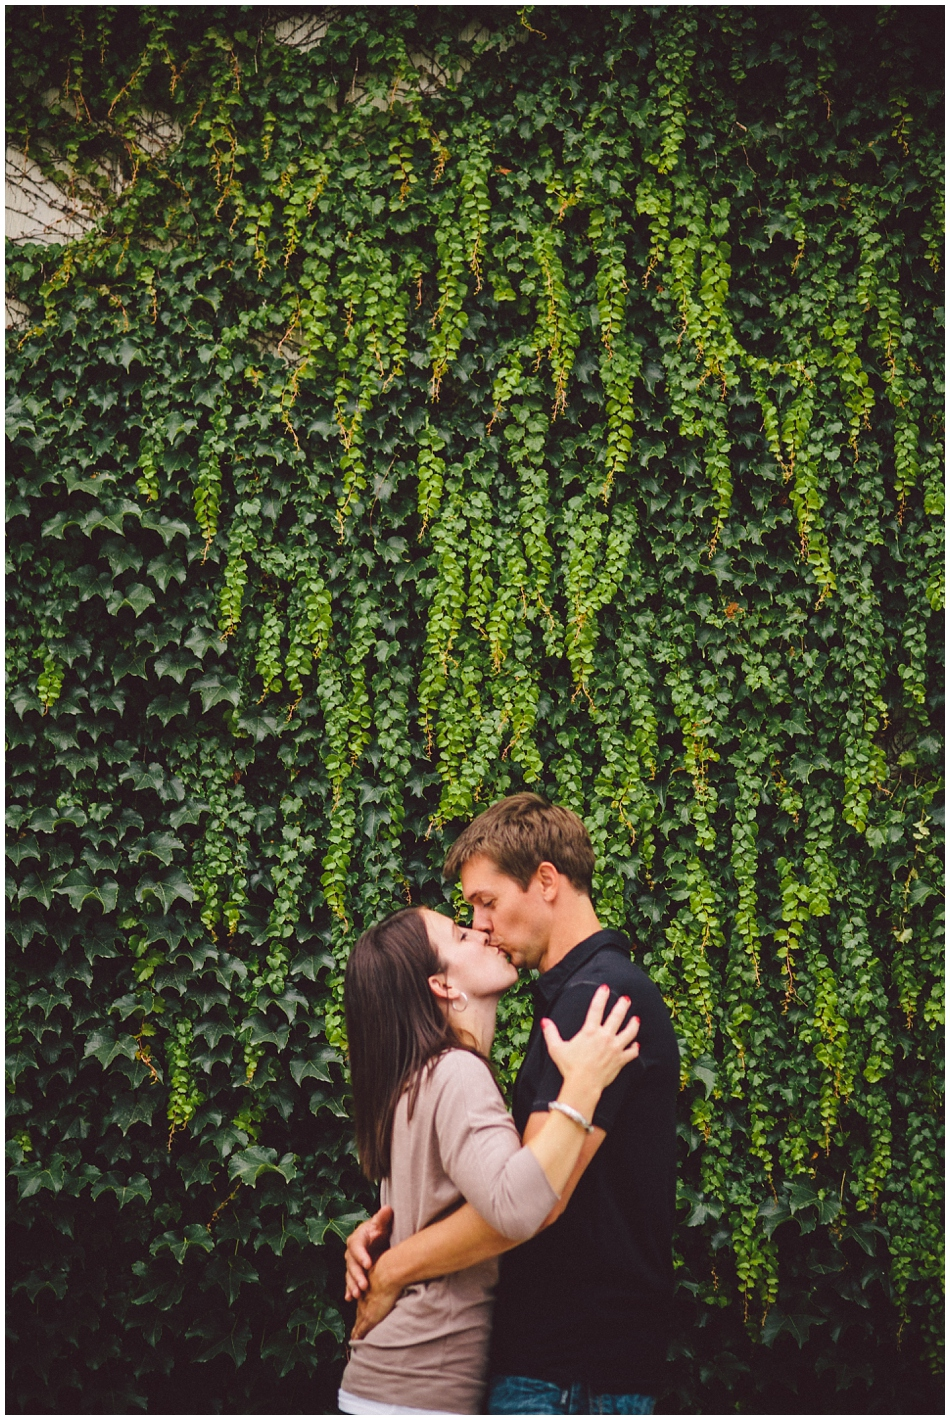 engaged couple kissing in front of green ivy wall